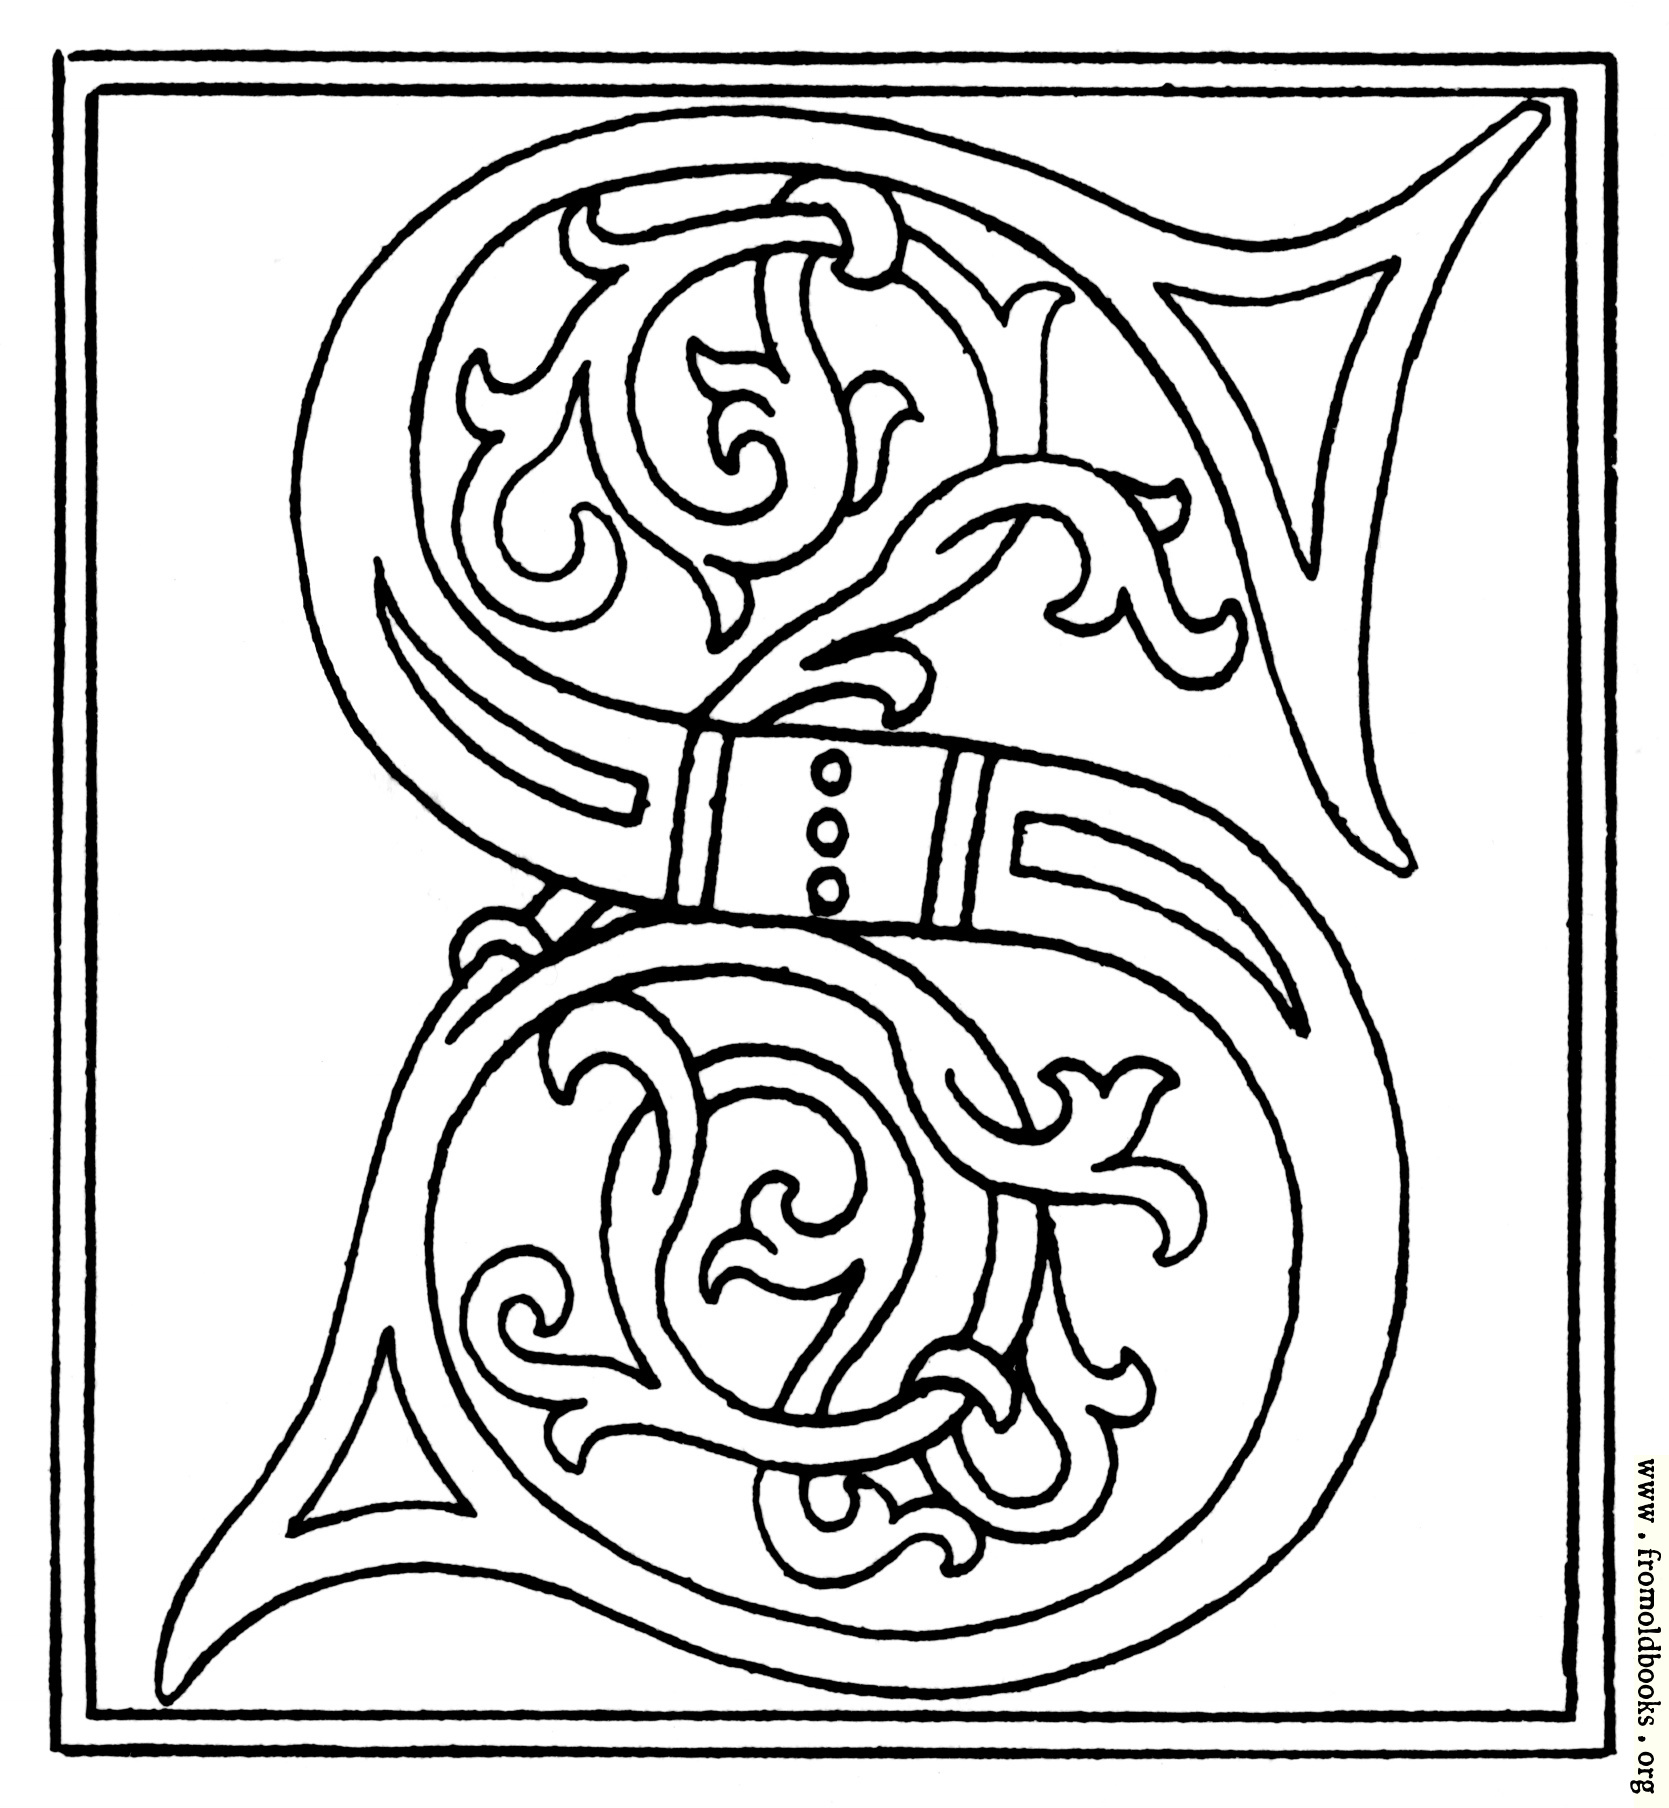 clipart: initial letter S from late 15th century printed book details